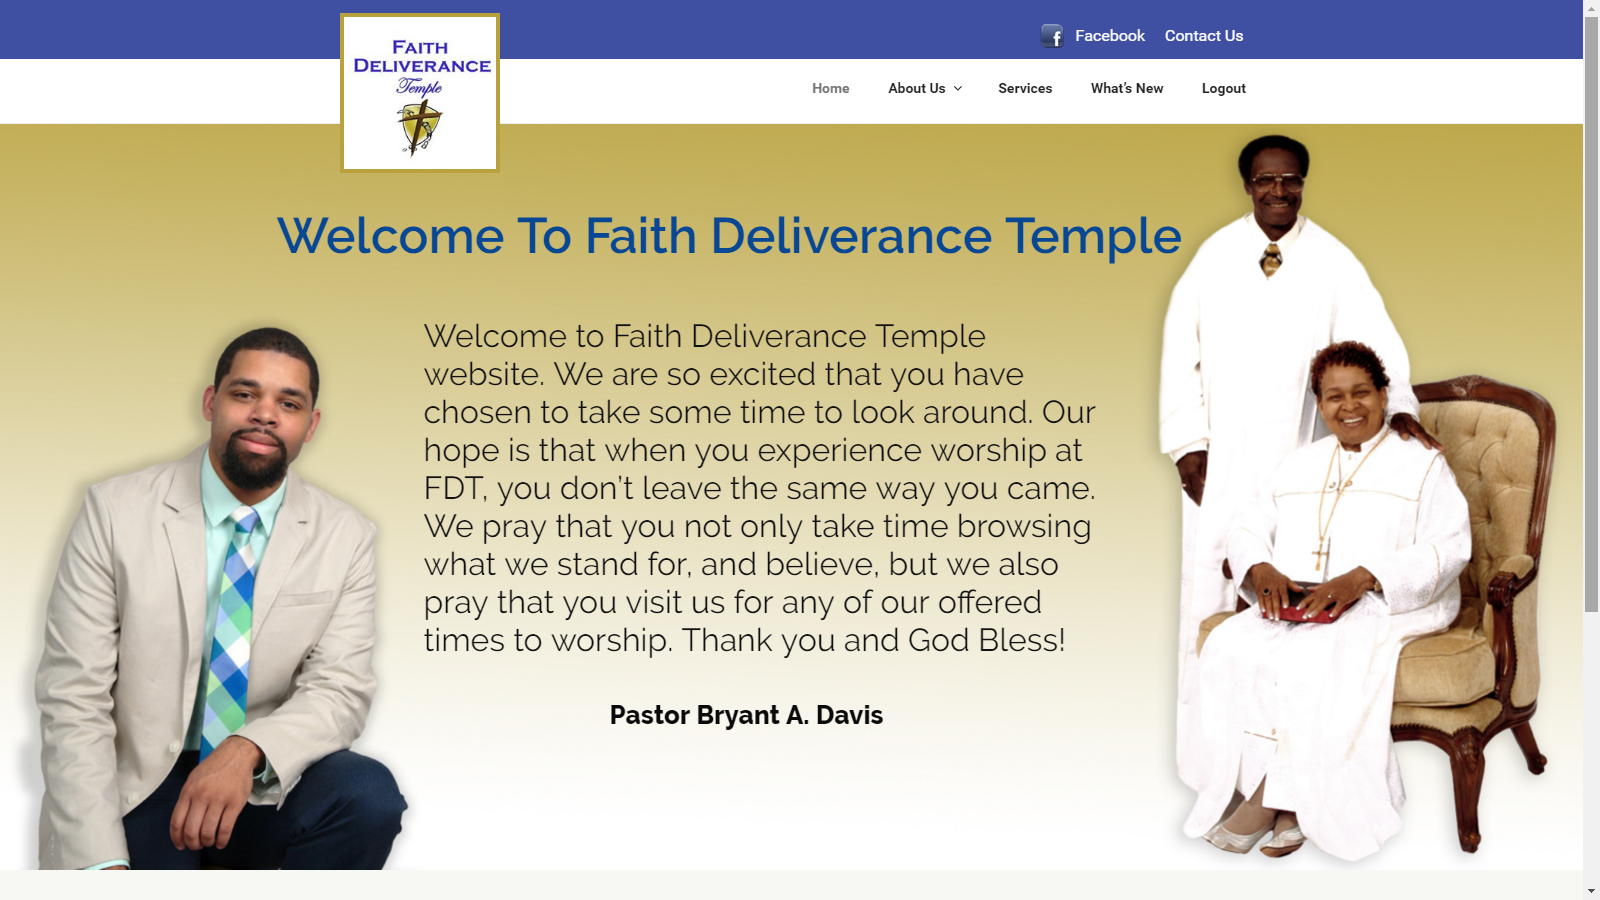 Faith Deliverance Temple Website